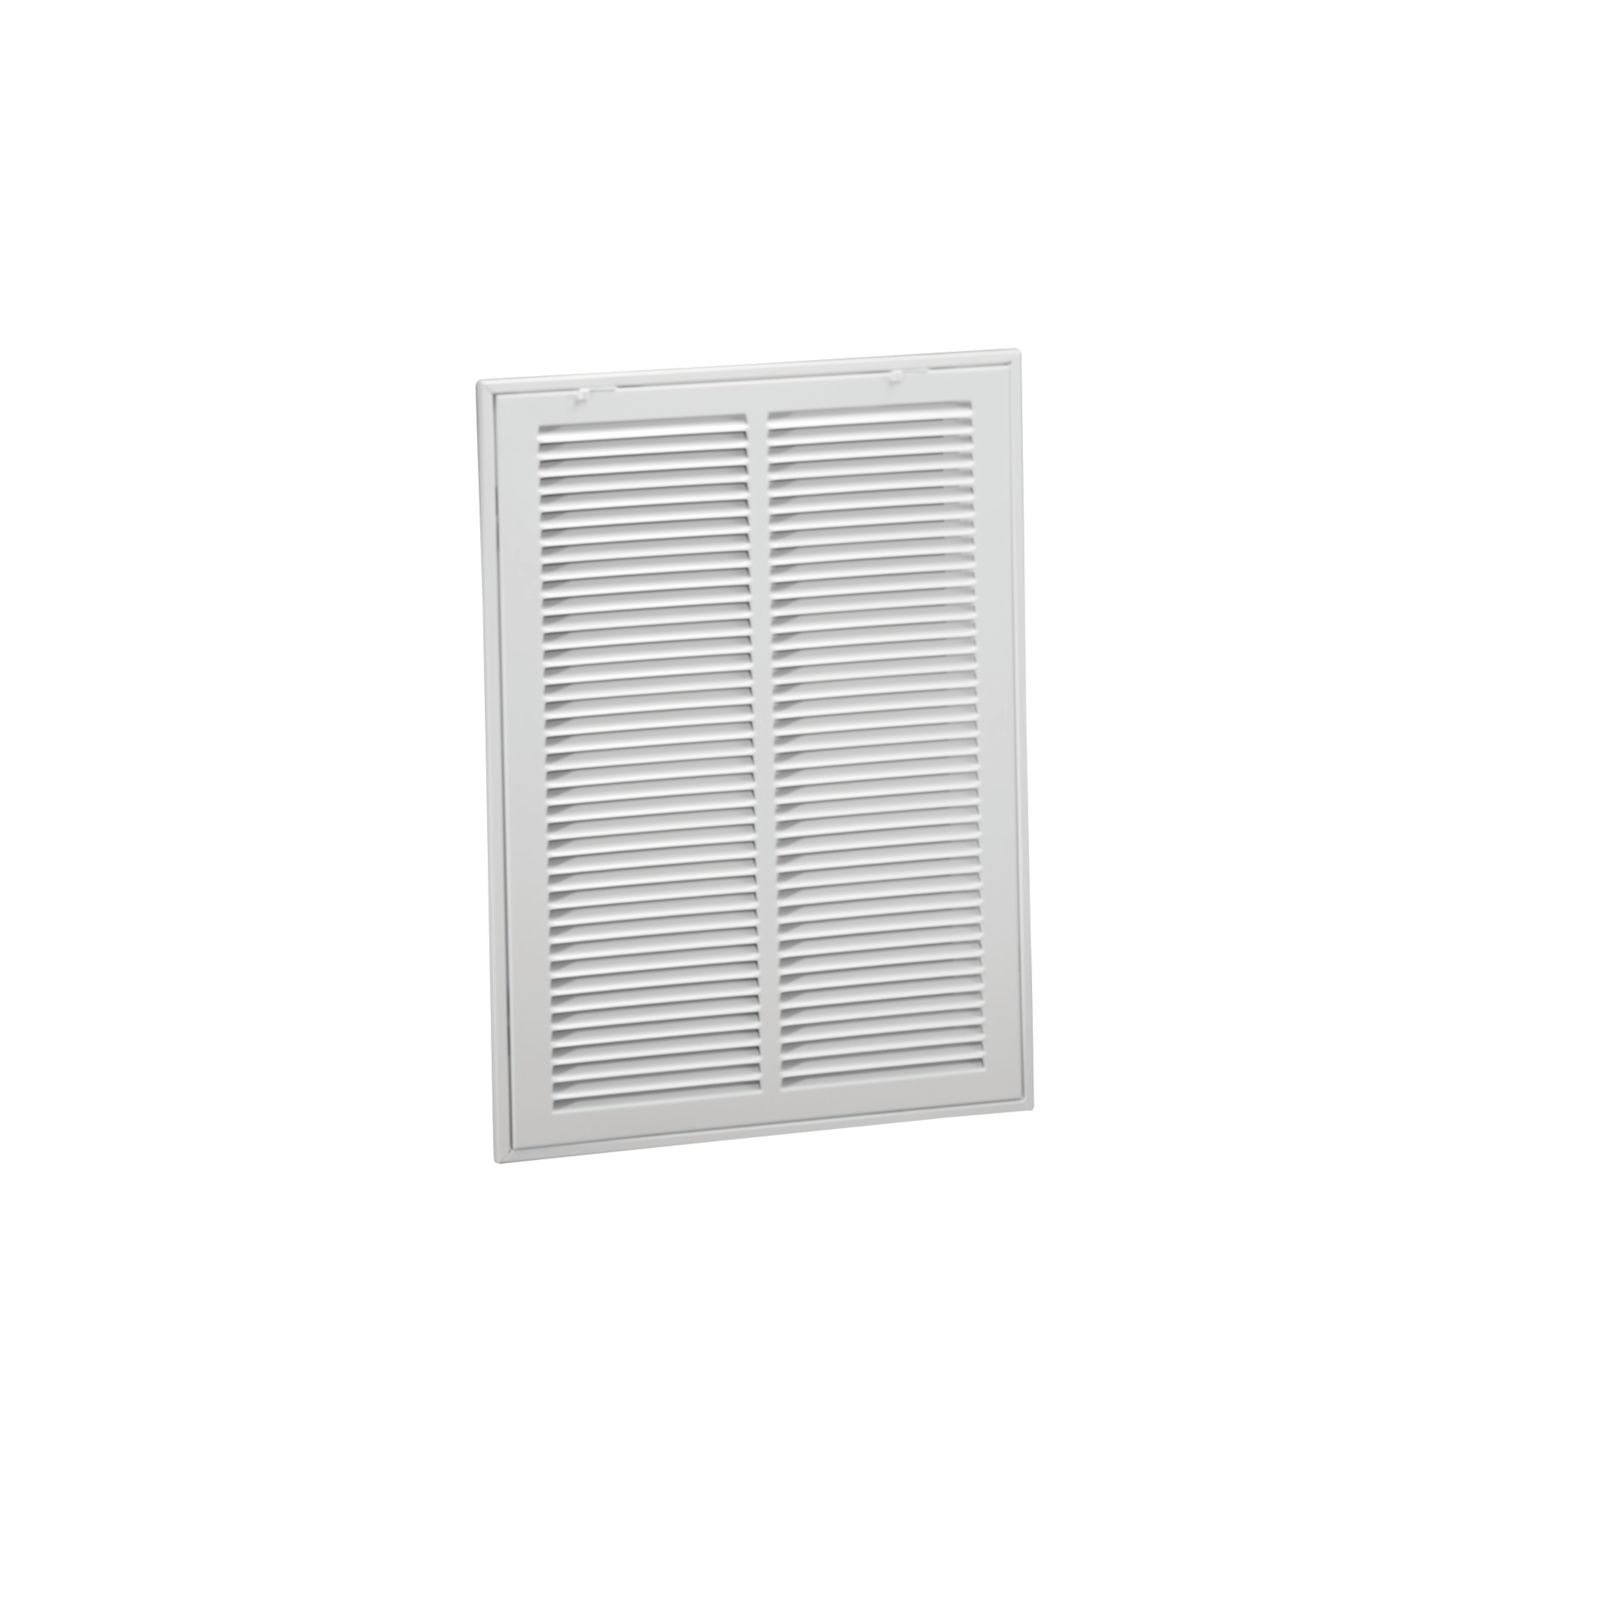 "Hart & Cooley 043522 - #673 Steel Return Air Filter Grille, White Finish, 24"" X 12"""